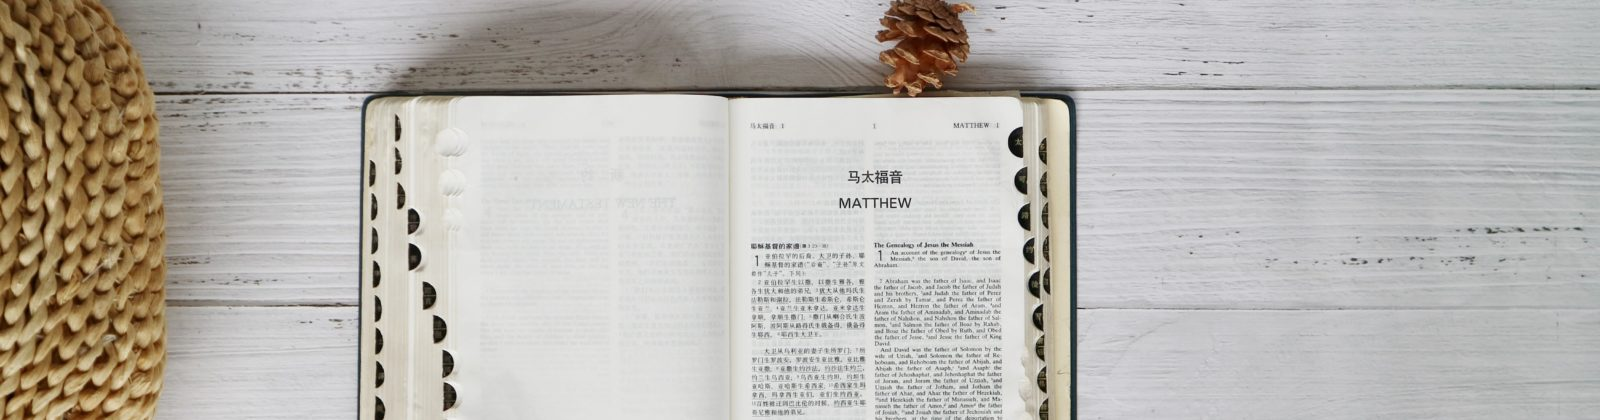 new testament issues